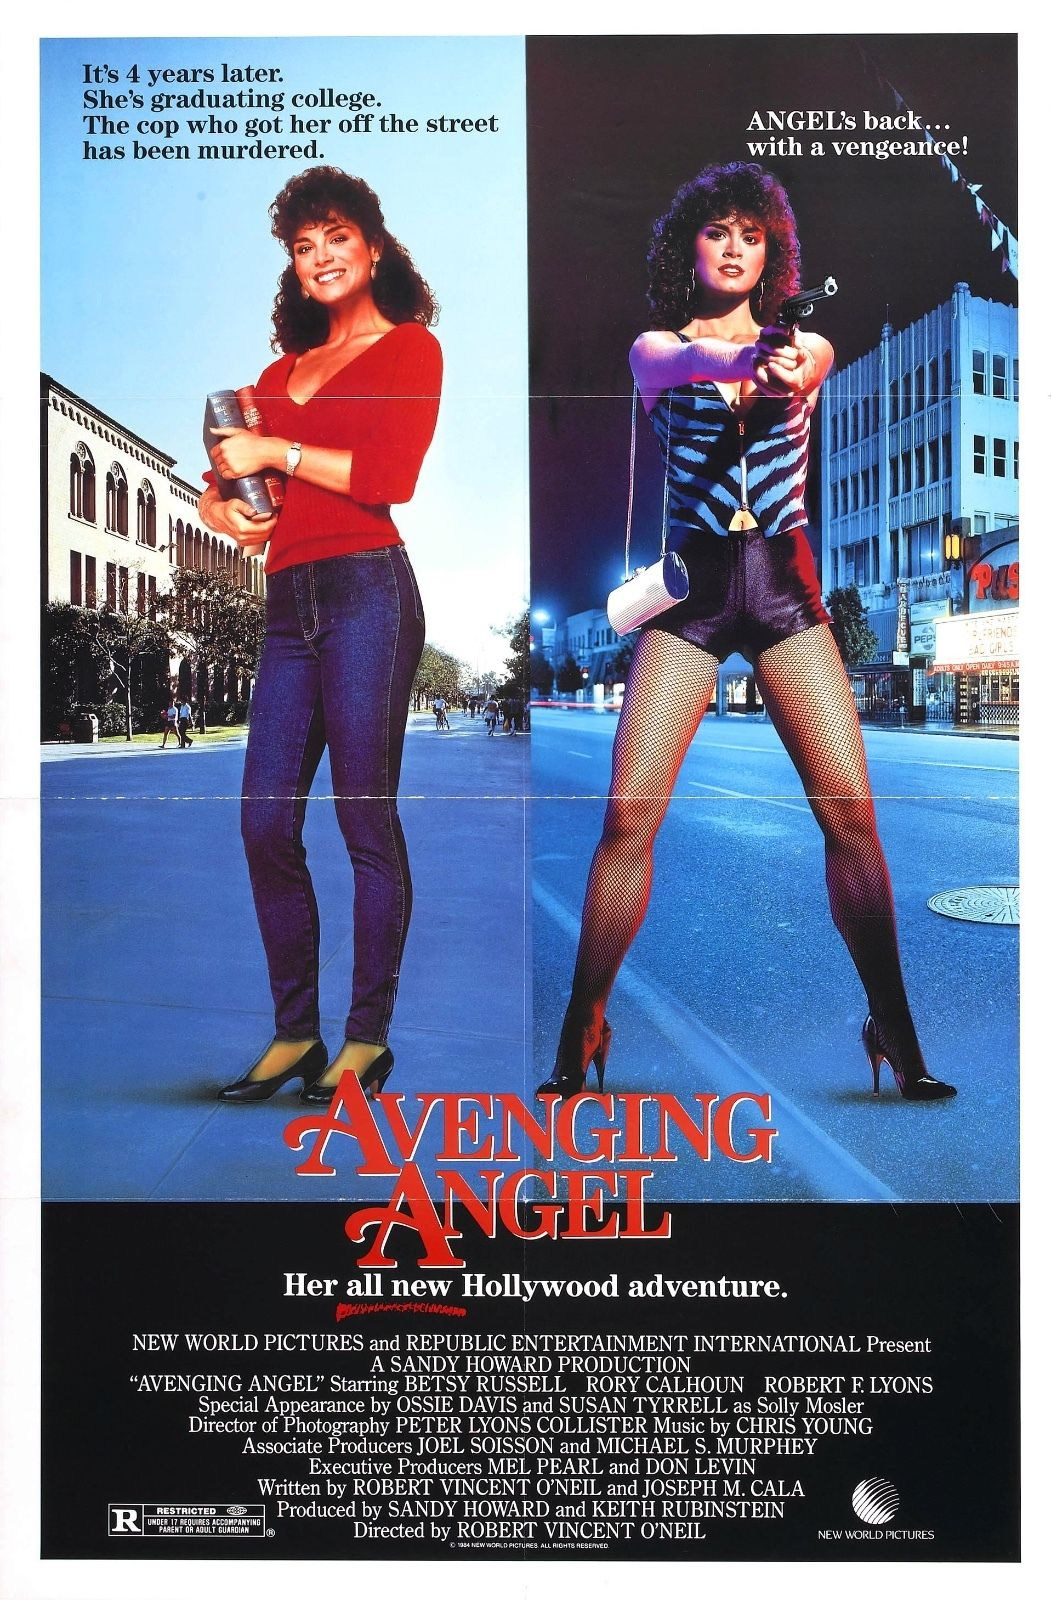 73983-Avenging-Angel-Movie-1985-Thriller-Action-Wall-Print-Poster-Affiche